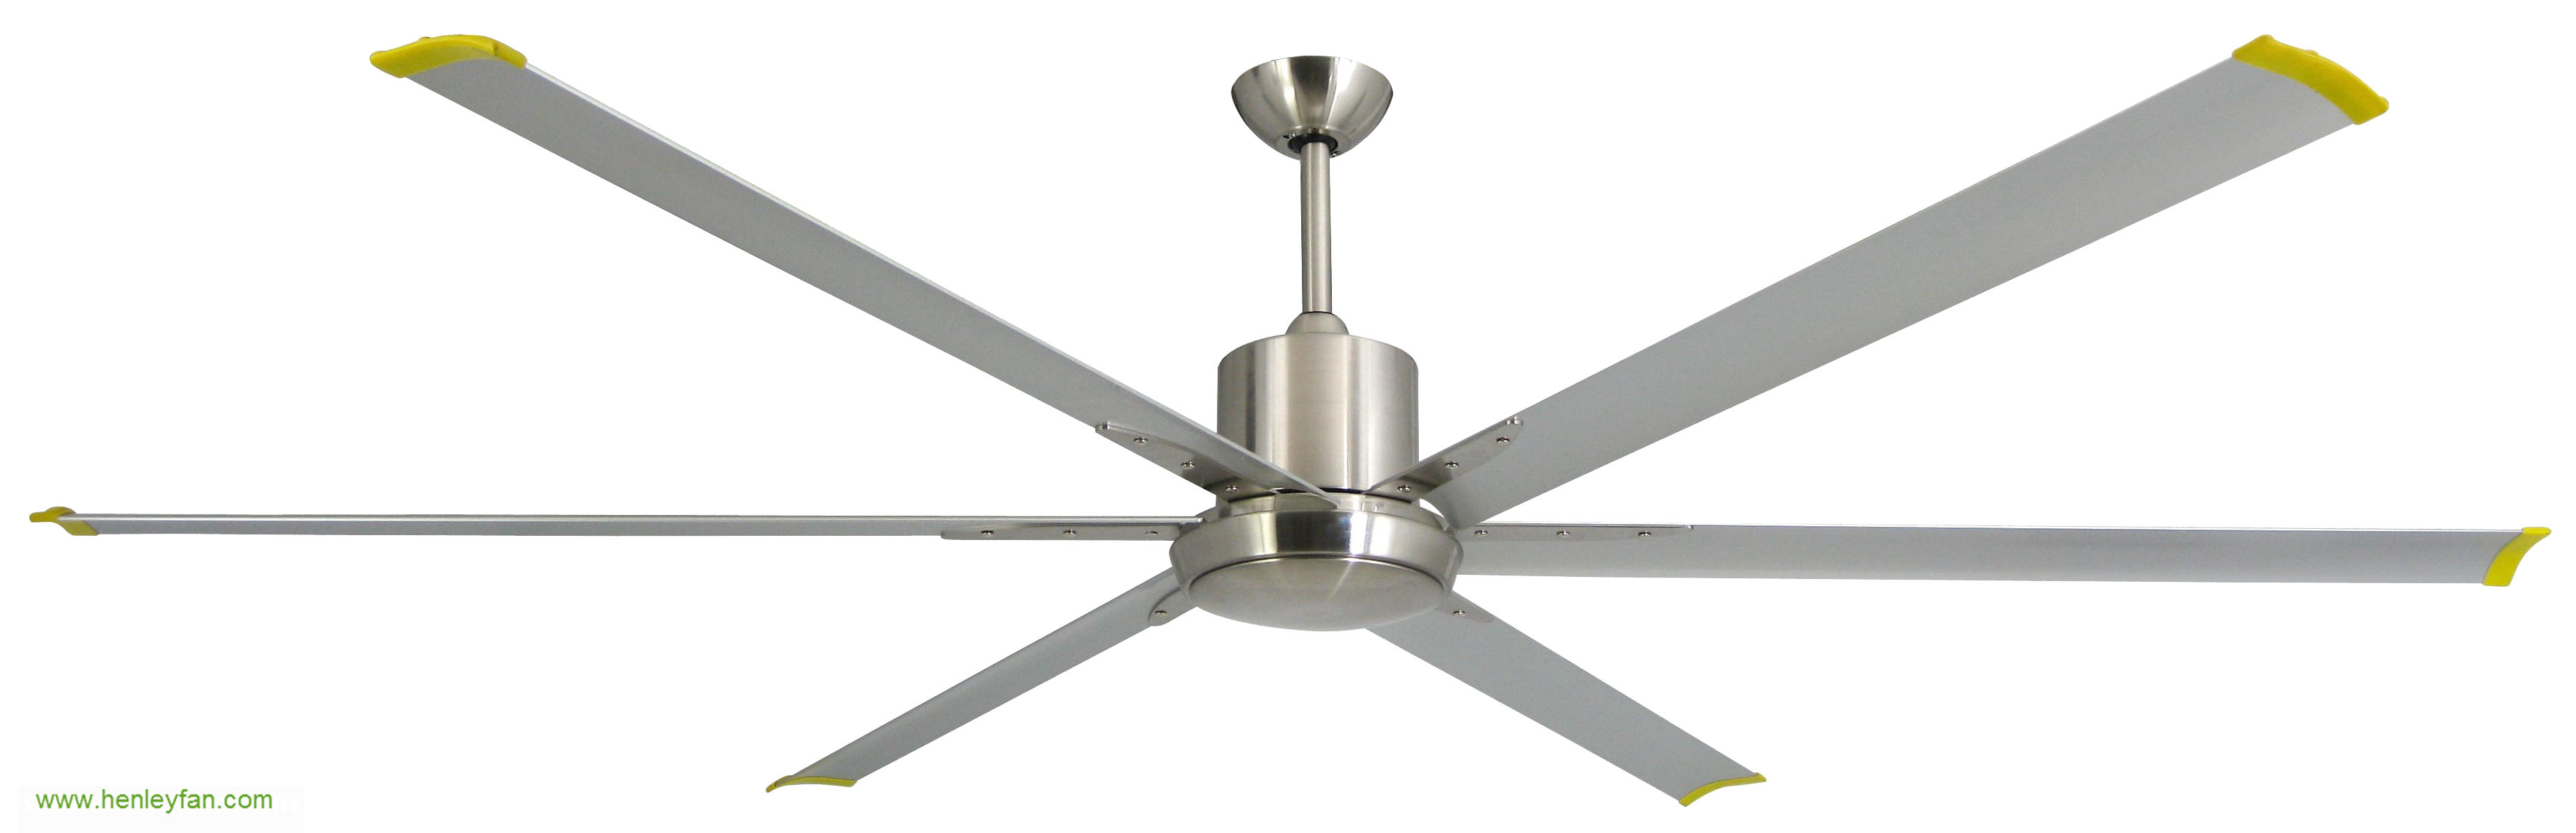 Dc Motor Ceiling Fan Gallery